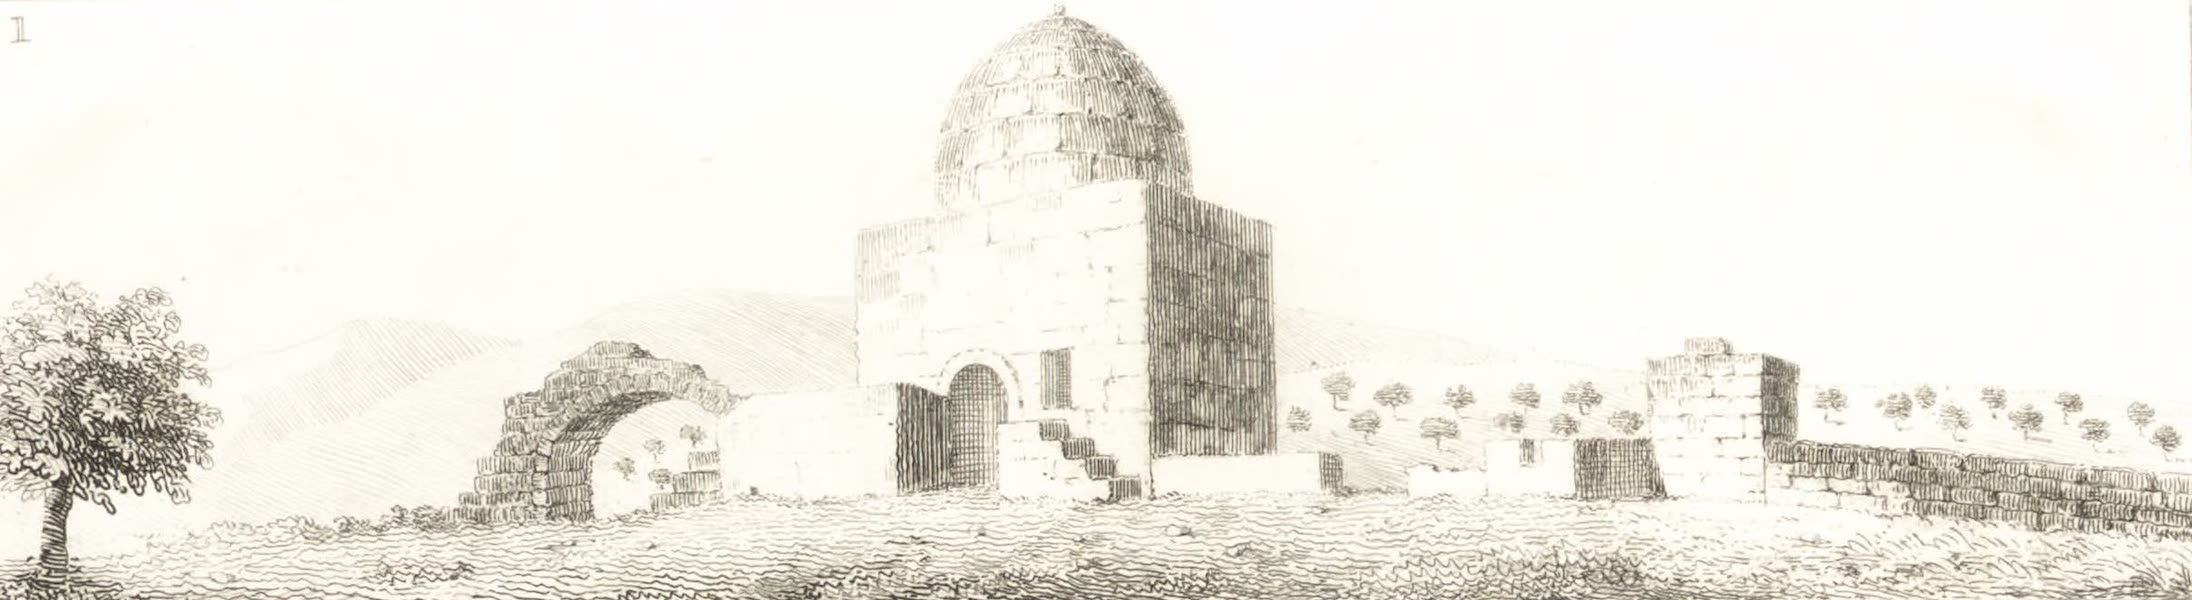 Journal of a Tour in the Levant Vol. 2 - Tomb of Rachel (1820)